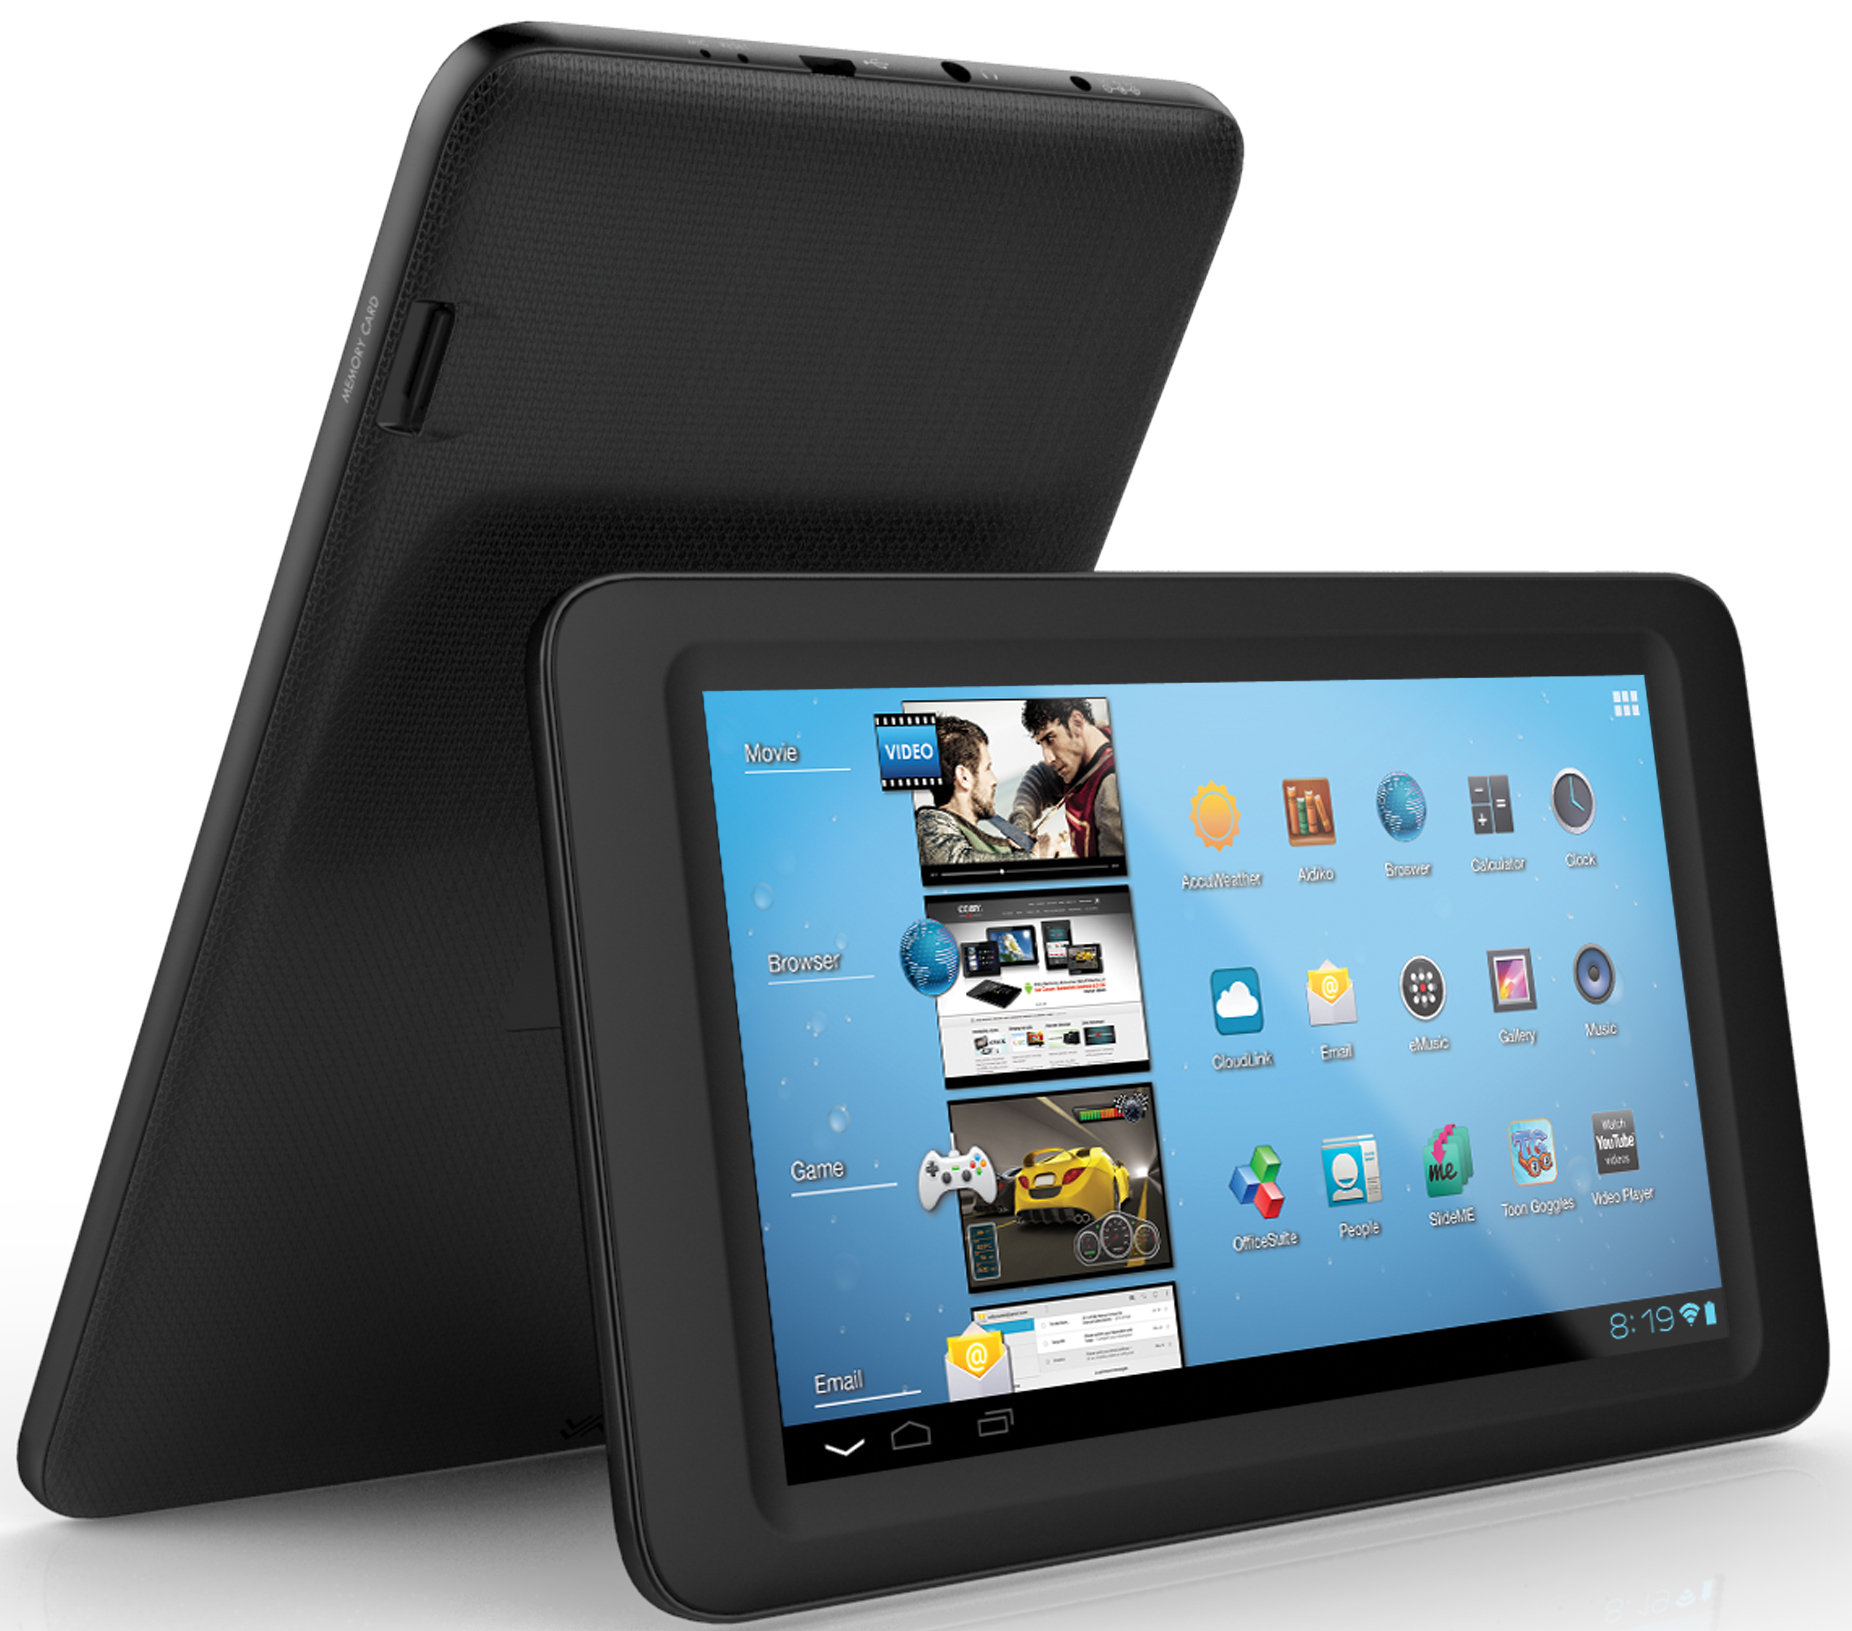 descargar android 4.0.4 para tablet